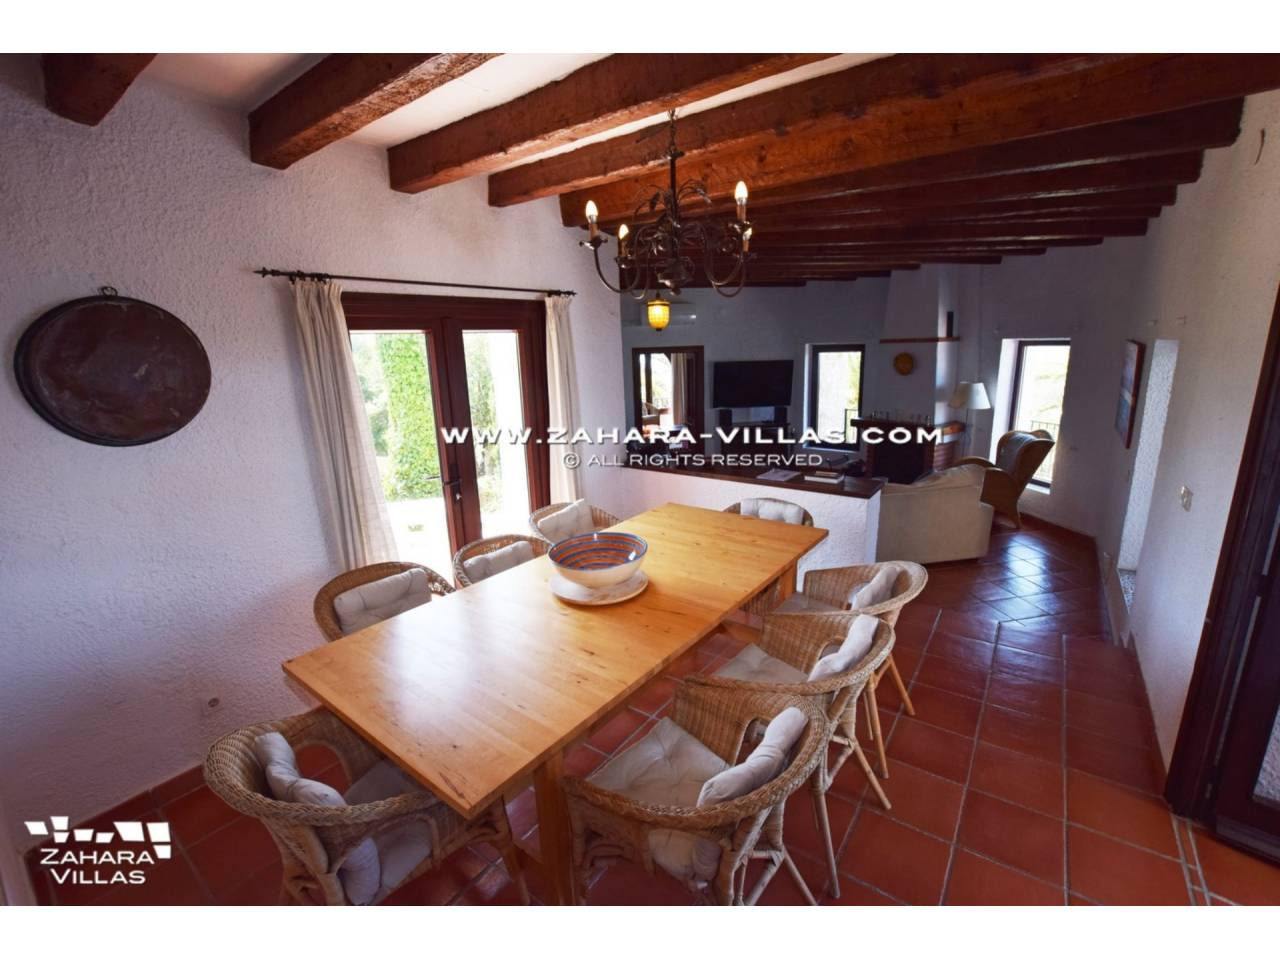 Imagen 27 de Wonderful Villa for sale in Atlanterra-Zahara de los Atunes